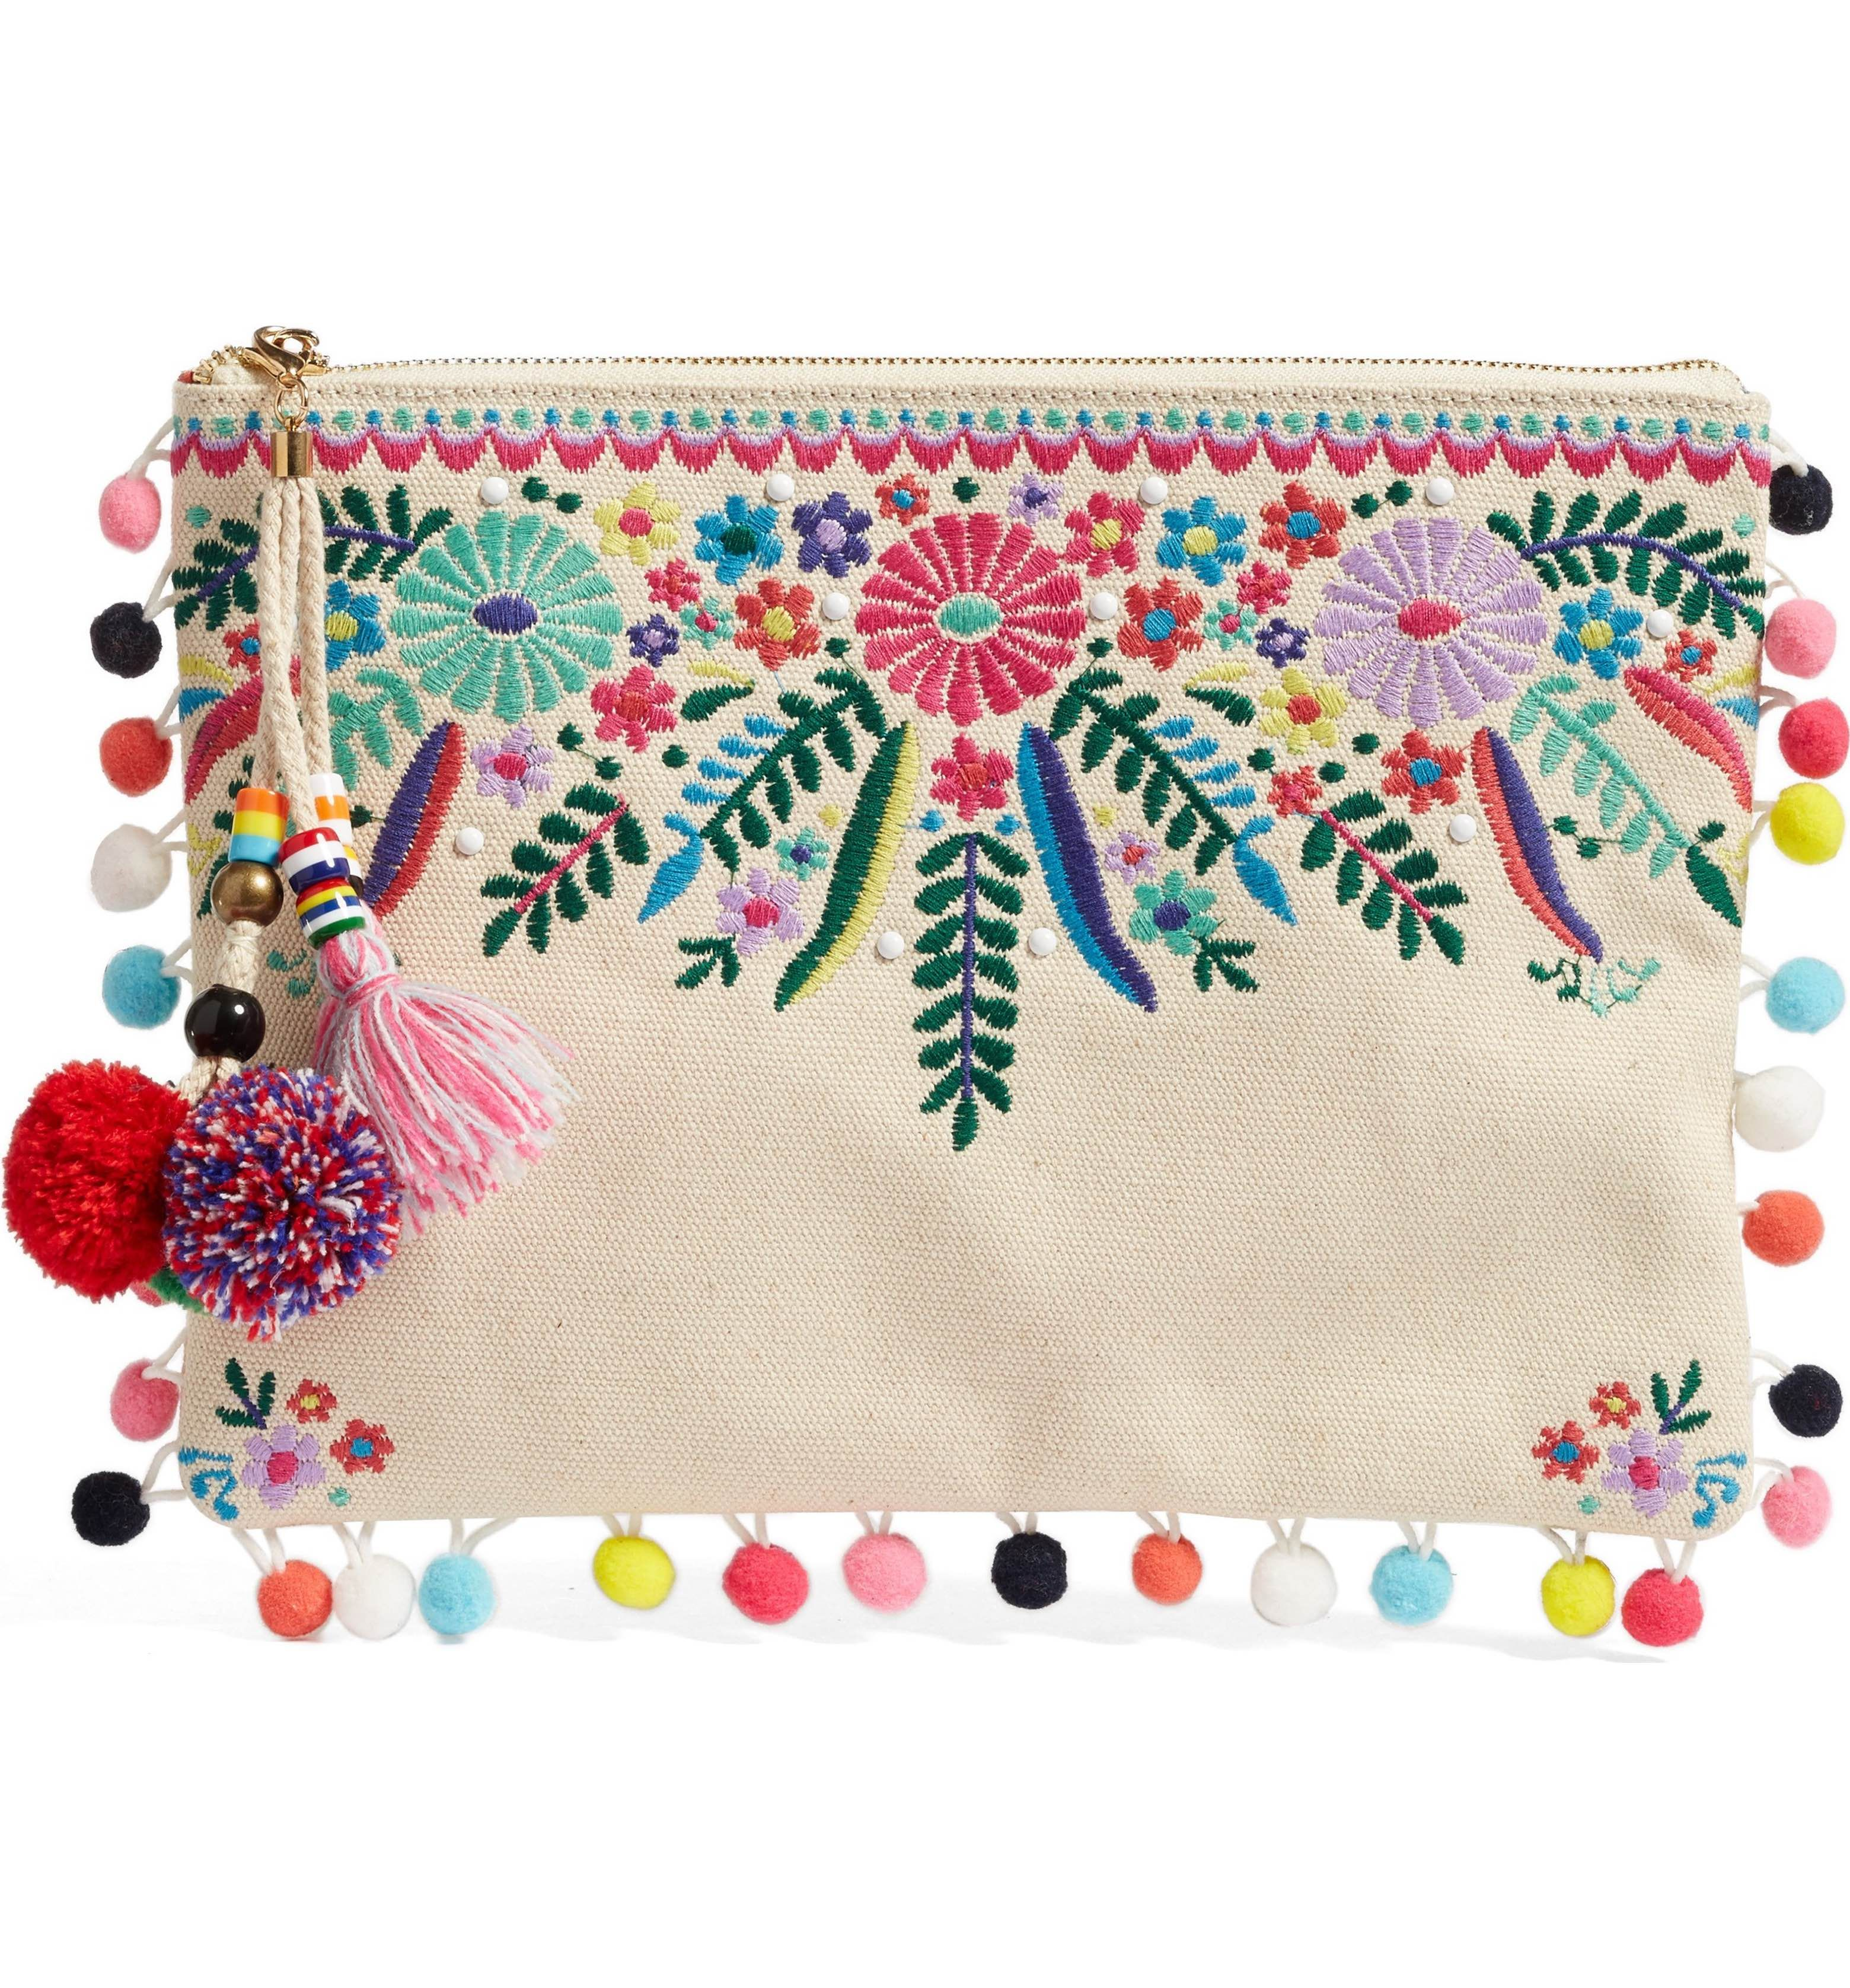 0de67a072c5 Main Image - Steven by Steve Madden Embroidered Clutch | My Style ...